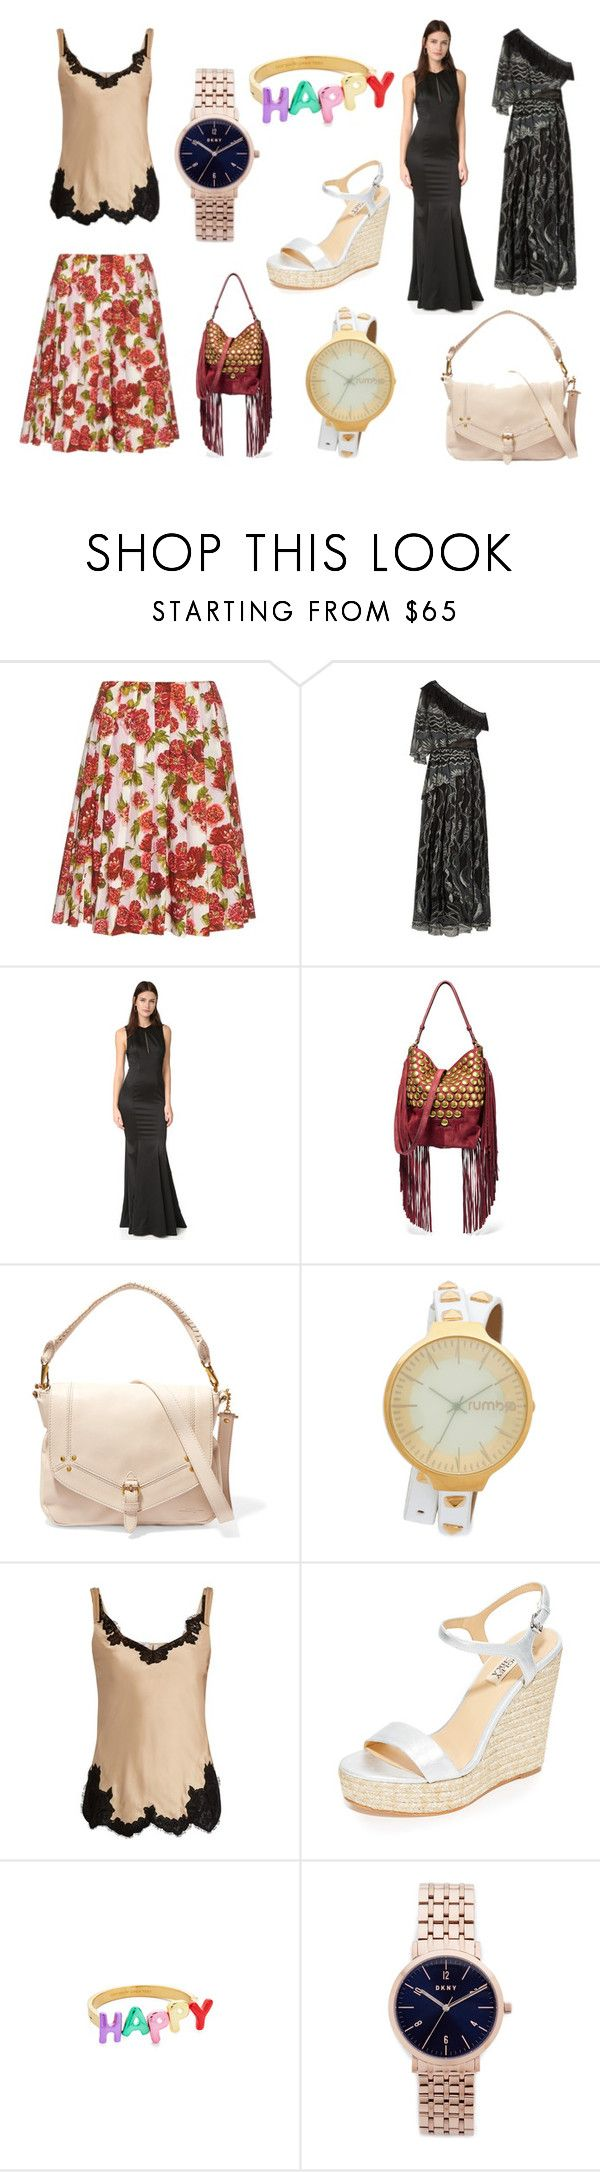 """""""DAILY FASHION SALE"""" by donna-wang1 ❤ liked on Polyvore featuring Emilia Wickstead, Zandra Rhodes, Zac Posen, Jérôme Dreyfuss, RumbaTime, Helmut Lang, Badgley Mischka, Kate Spade and DKNY"""